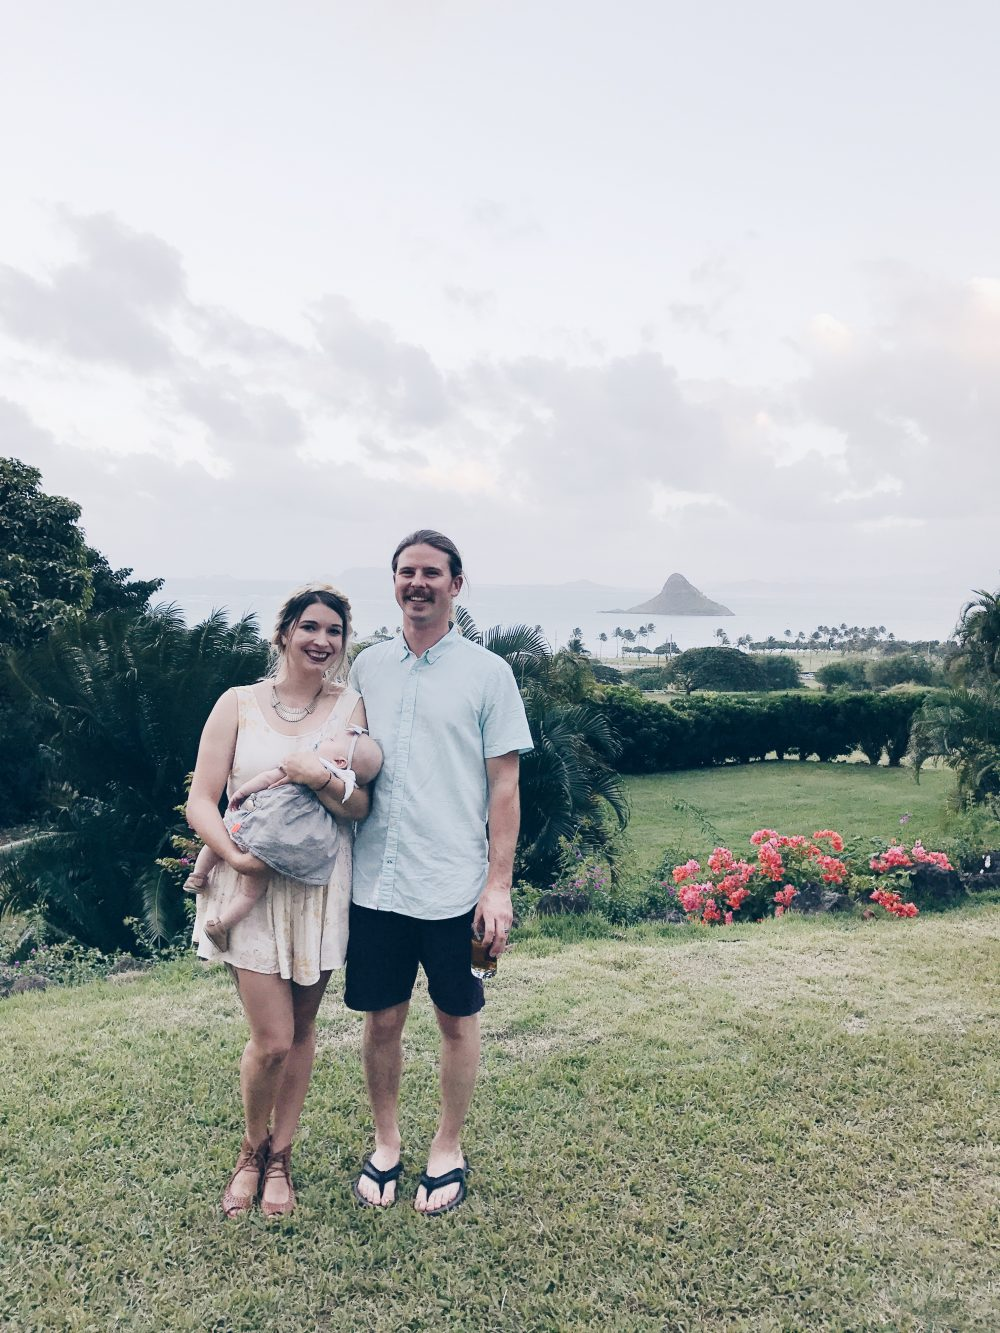 Our Family vacation to Oahu, Hawaii